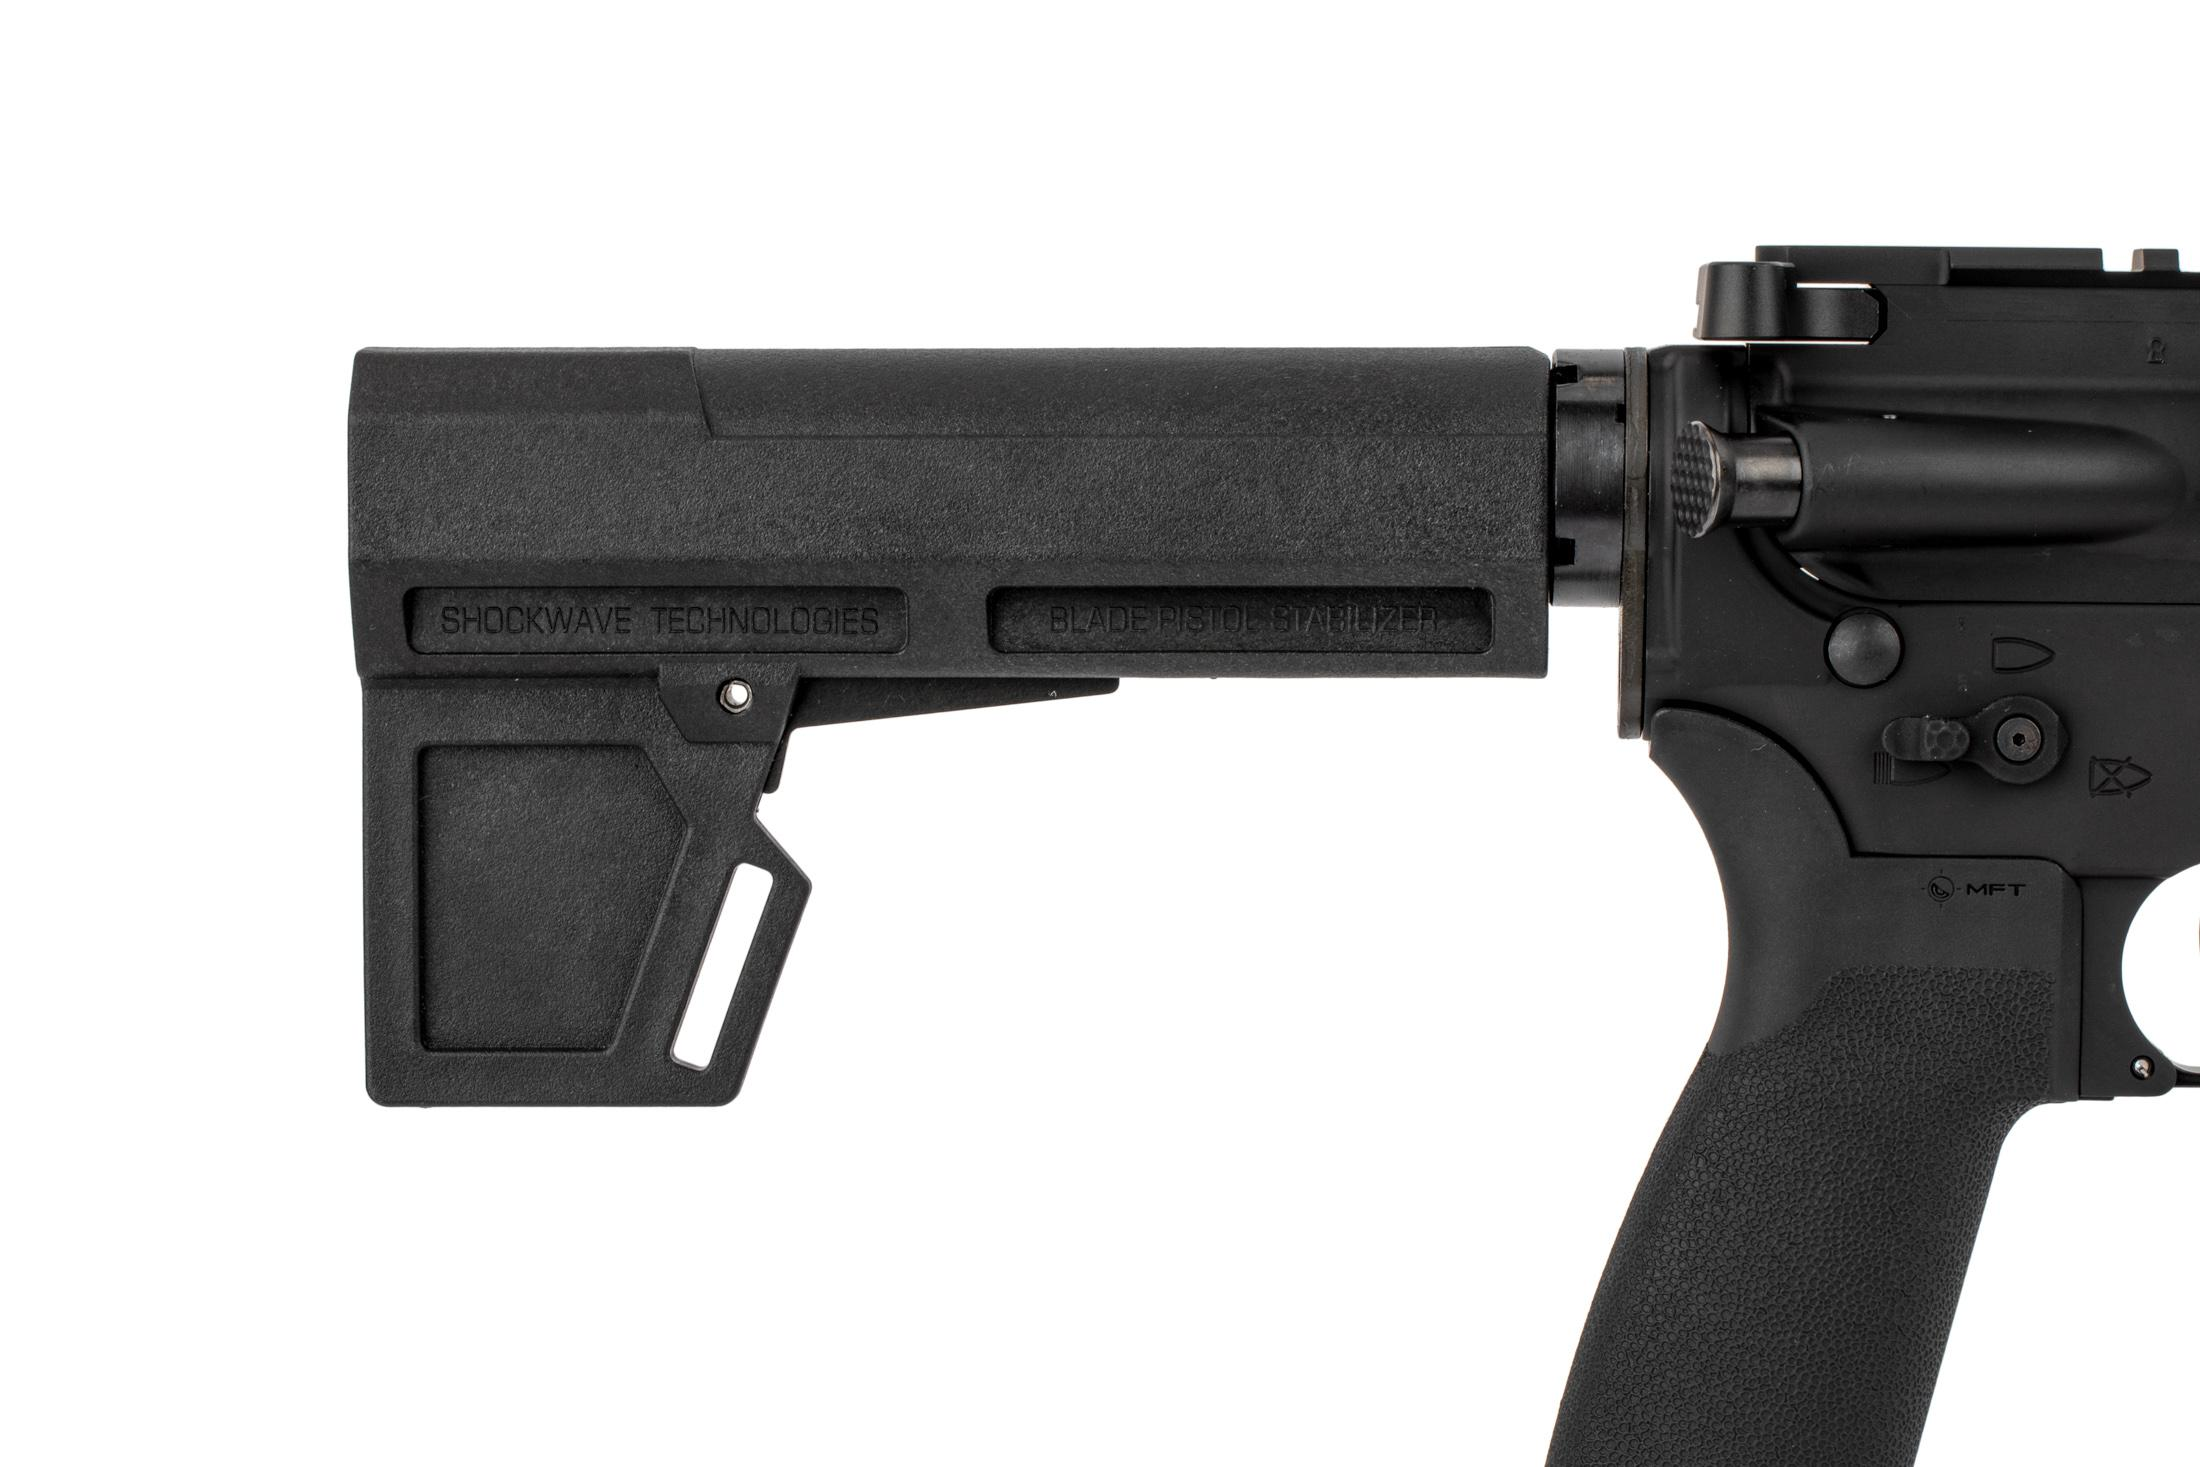 The Radical Firearms 300 AAC BLK AR-15 Pistol with blade stabilizer features an MFT ergonomic pistol grip